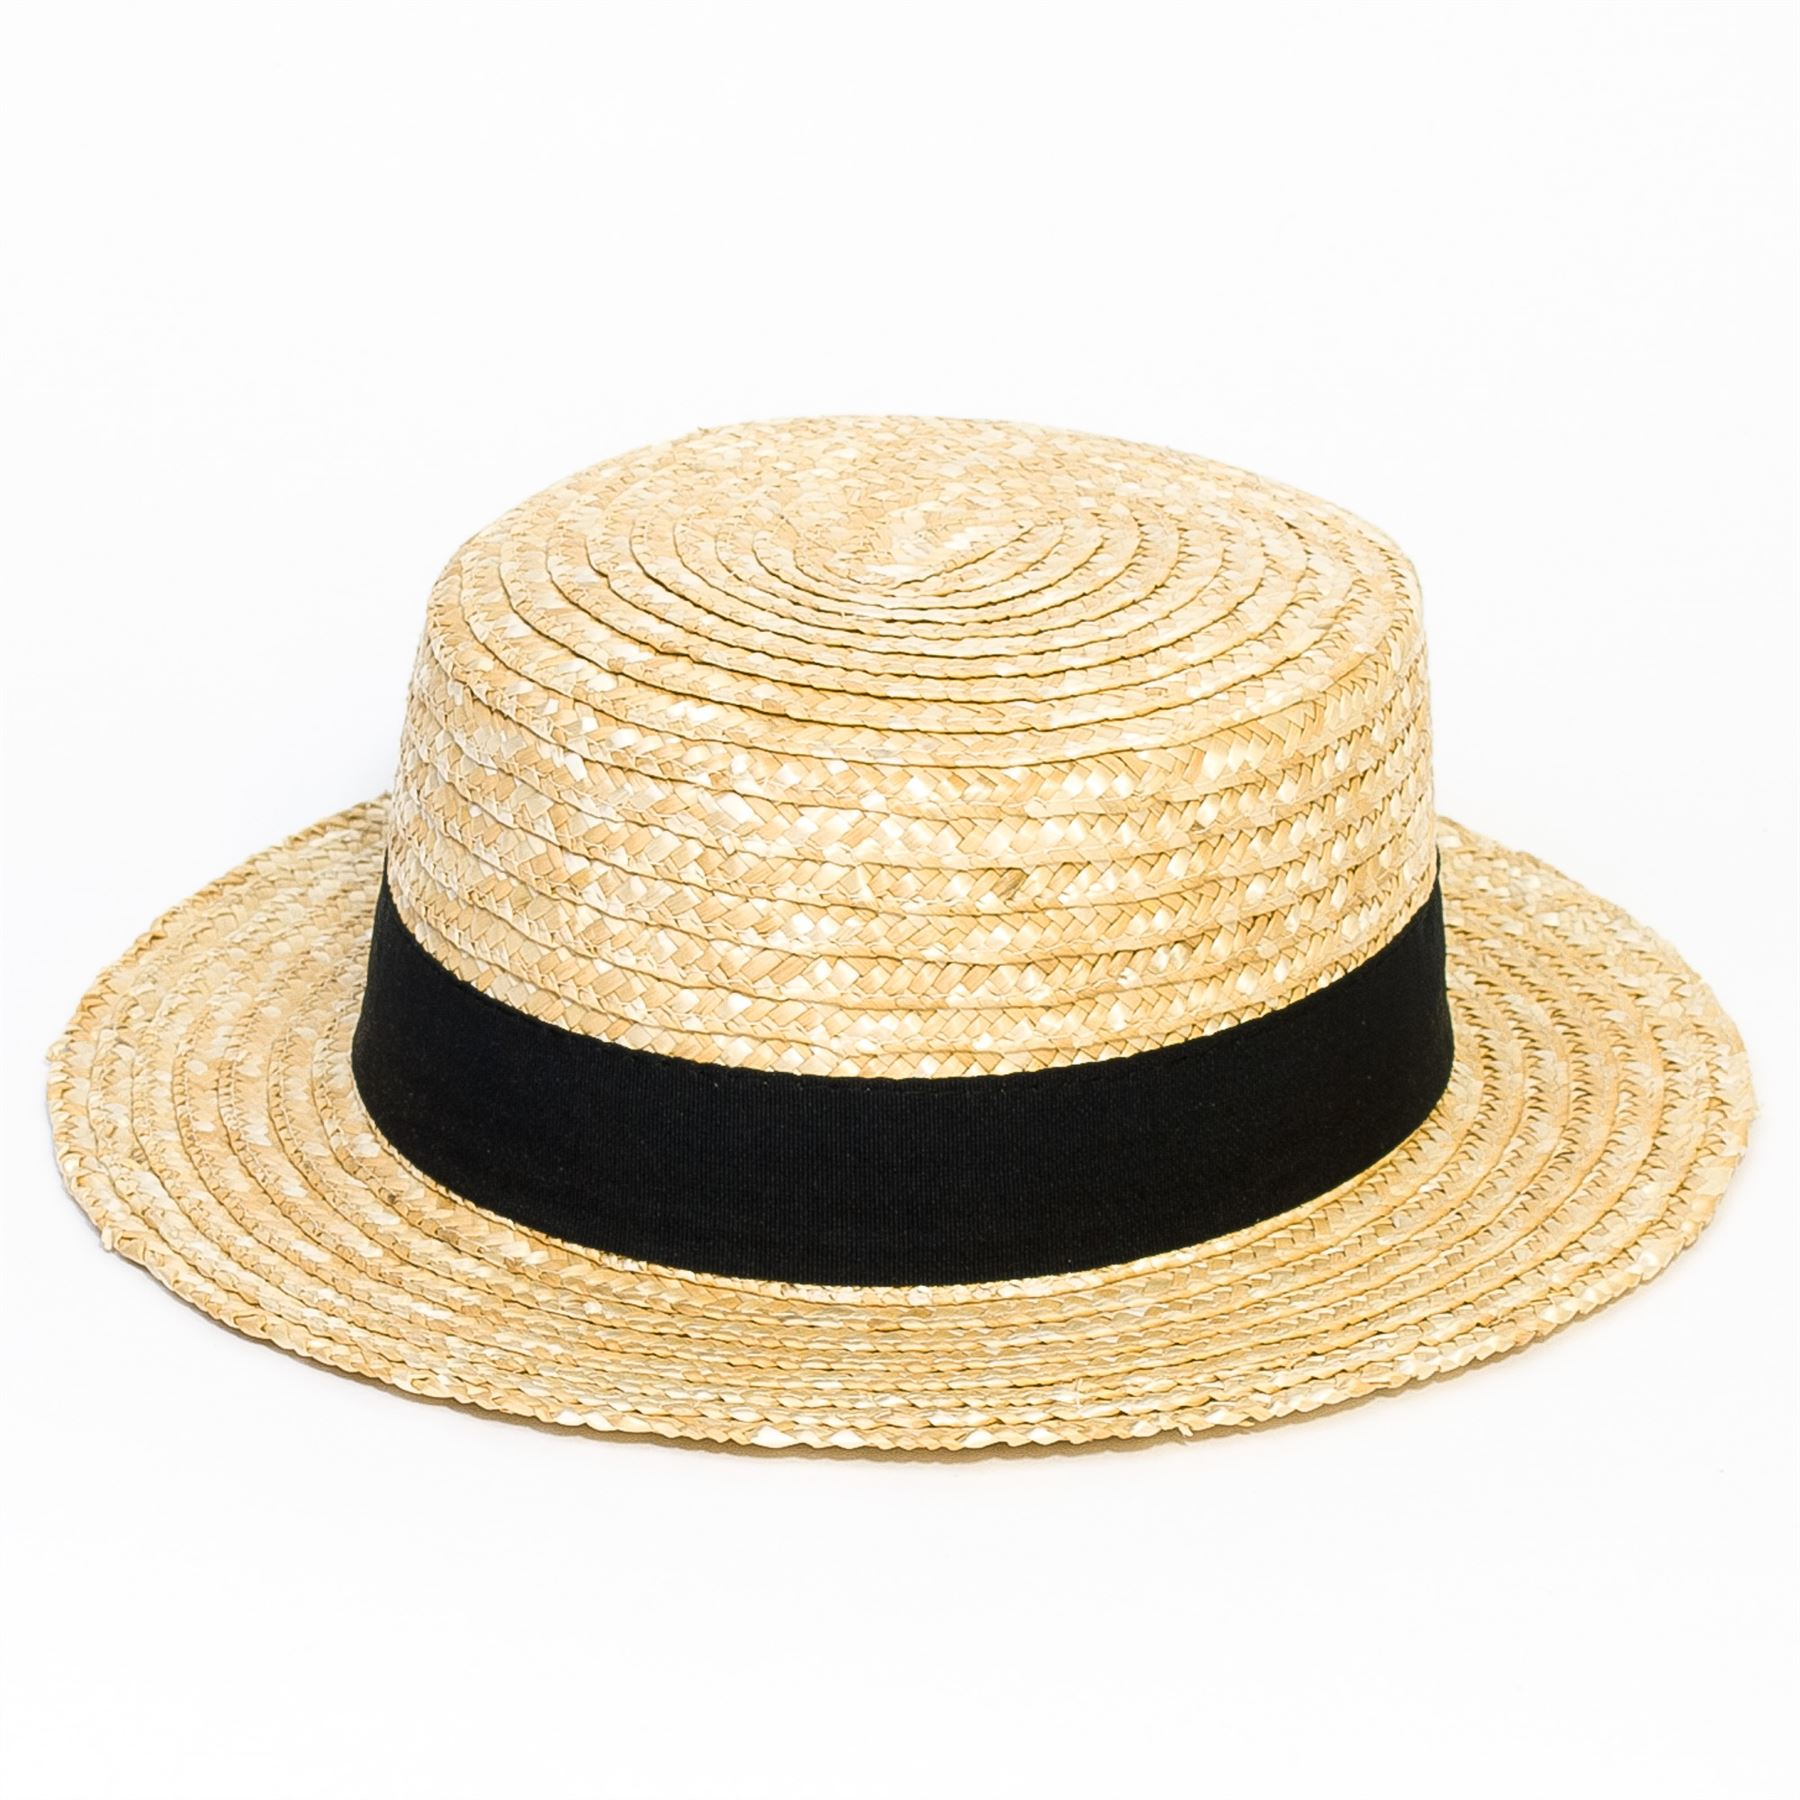 Free shipping and returns on Eric Javits 'Gondolier' Boater Hat at nazhatie-skachat.gq A classic boater hat fashioned with a grosgrain band and a double-layered brim is reminiscent of the styles seen out on the waters of Venice. Worn straight, tilted to the side or positioned further back on the head, this lightweight design is sure to give/5(3).